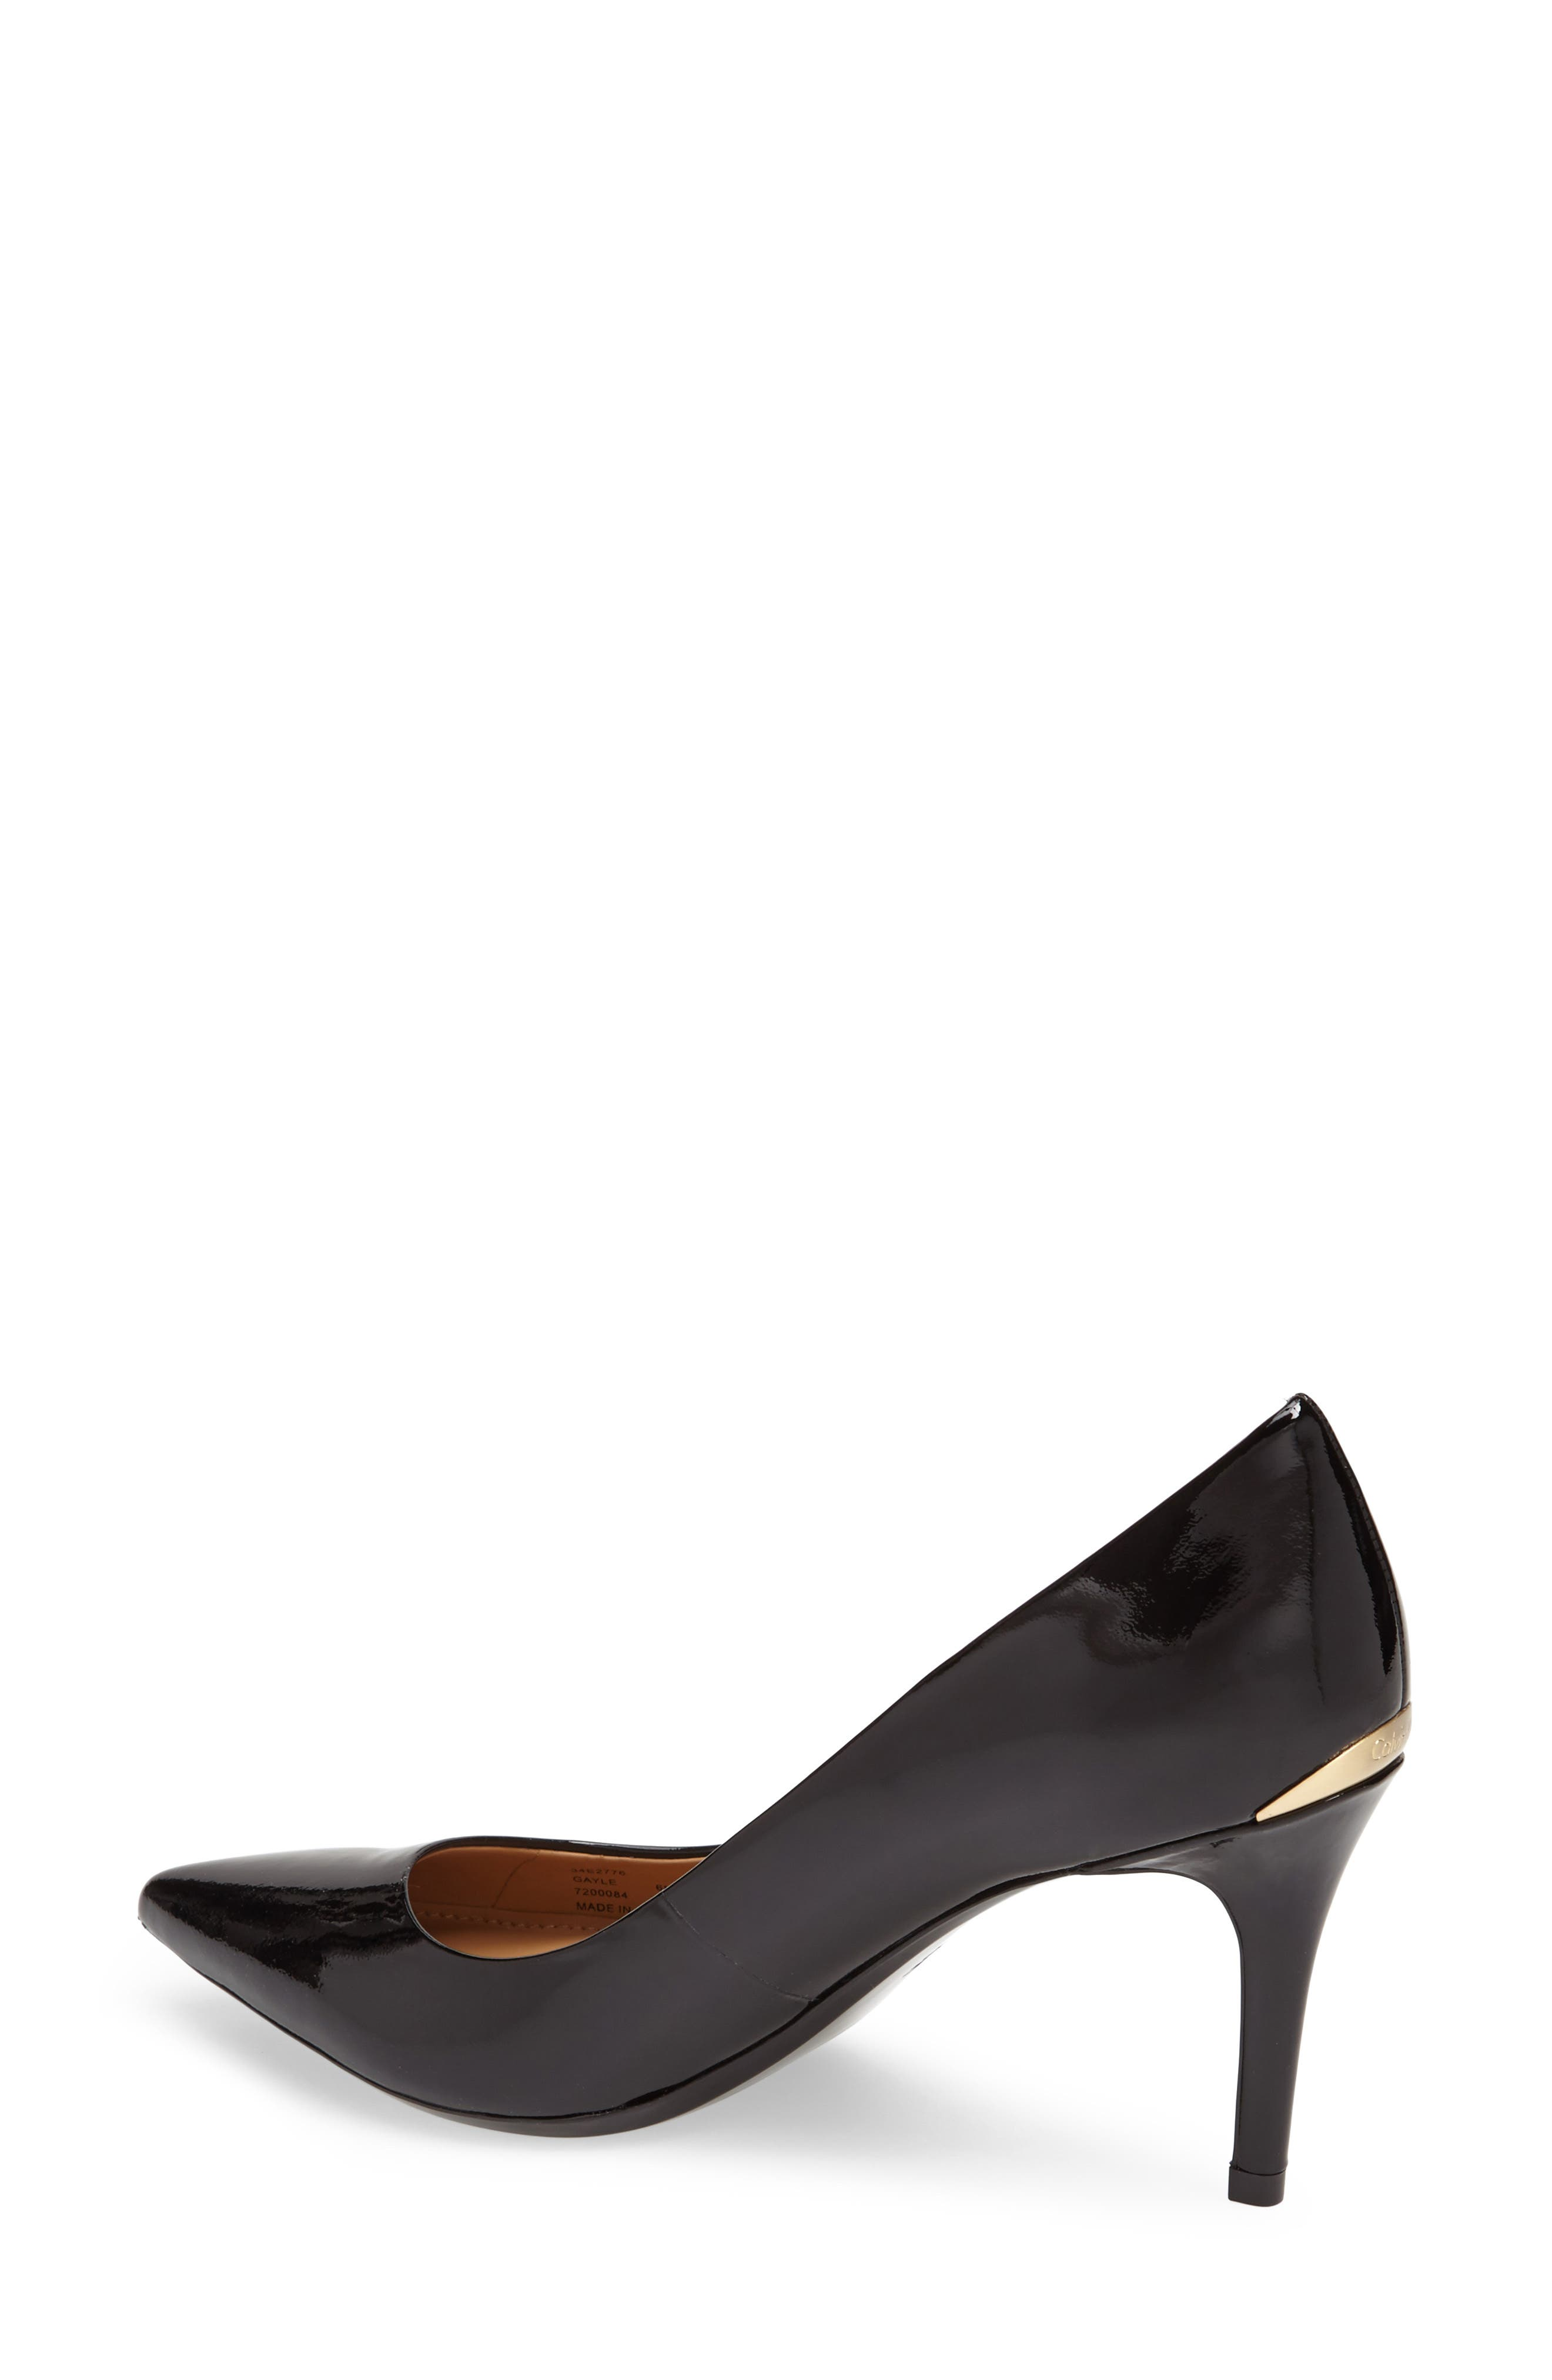 'Gayle' Pointy Toe Pump,                             Alternate thumbnail 2, color,                             BLACK PATENT